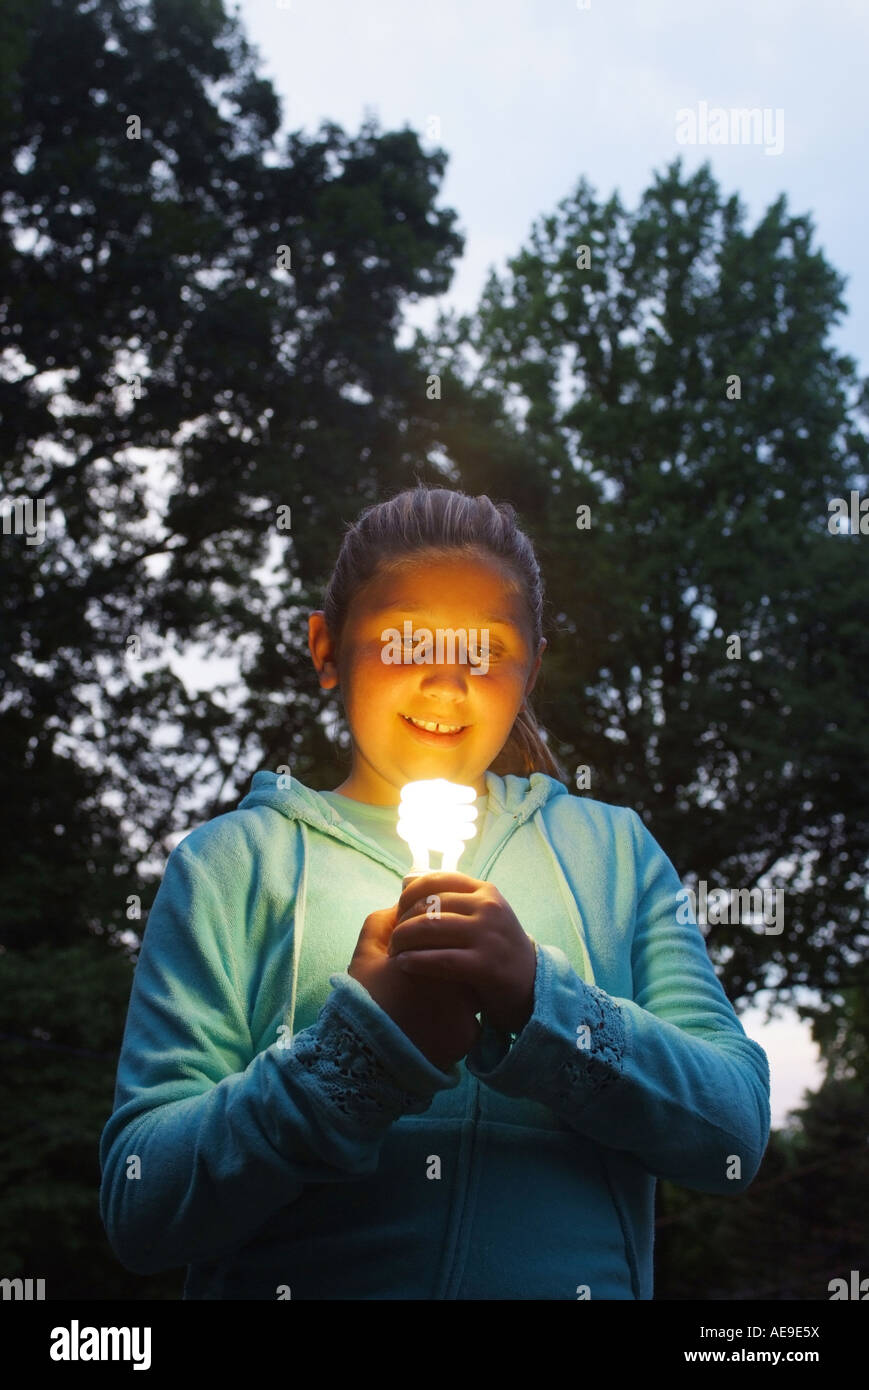 a-young-teenage-girl-holds-an-energy-saver-lightbulb-outdoors-AE9E5X.jpg